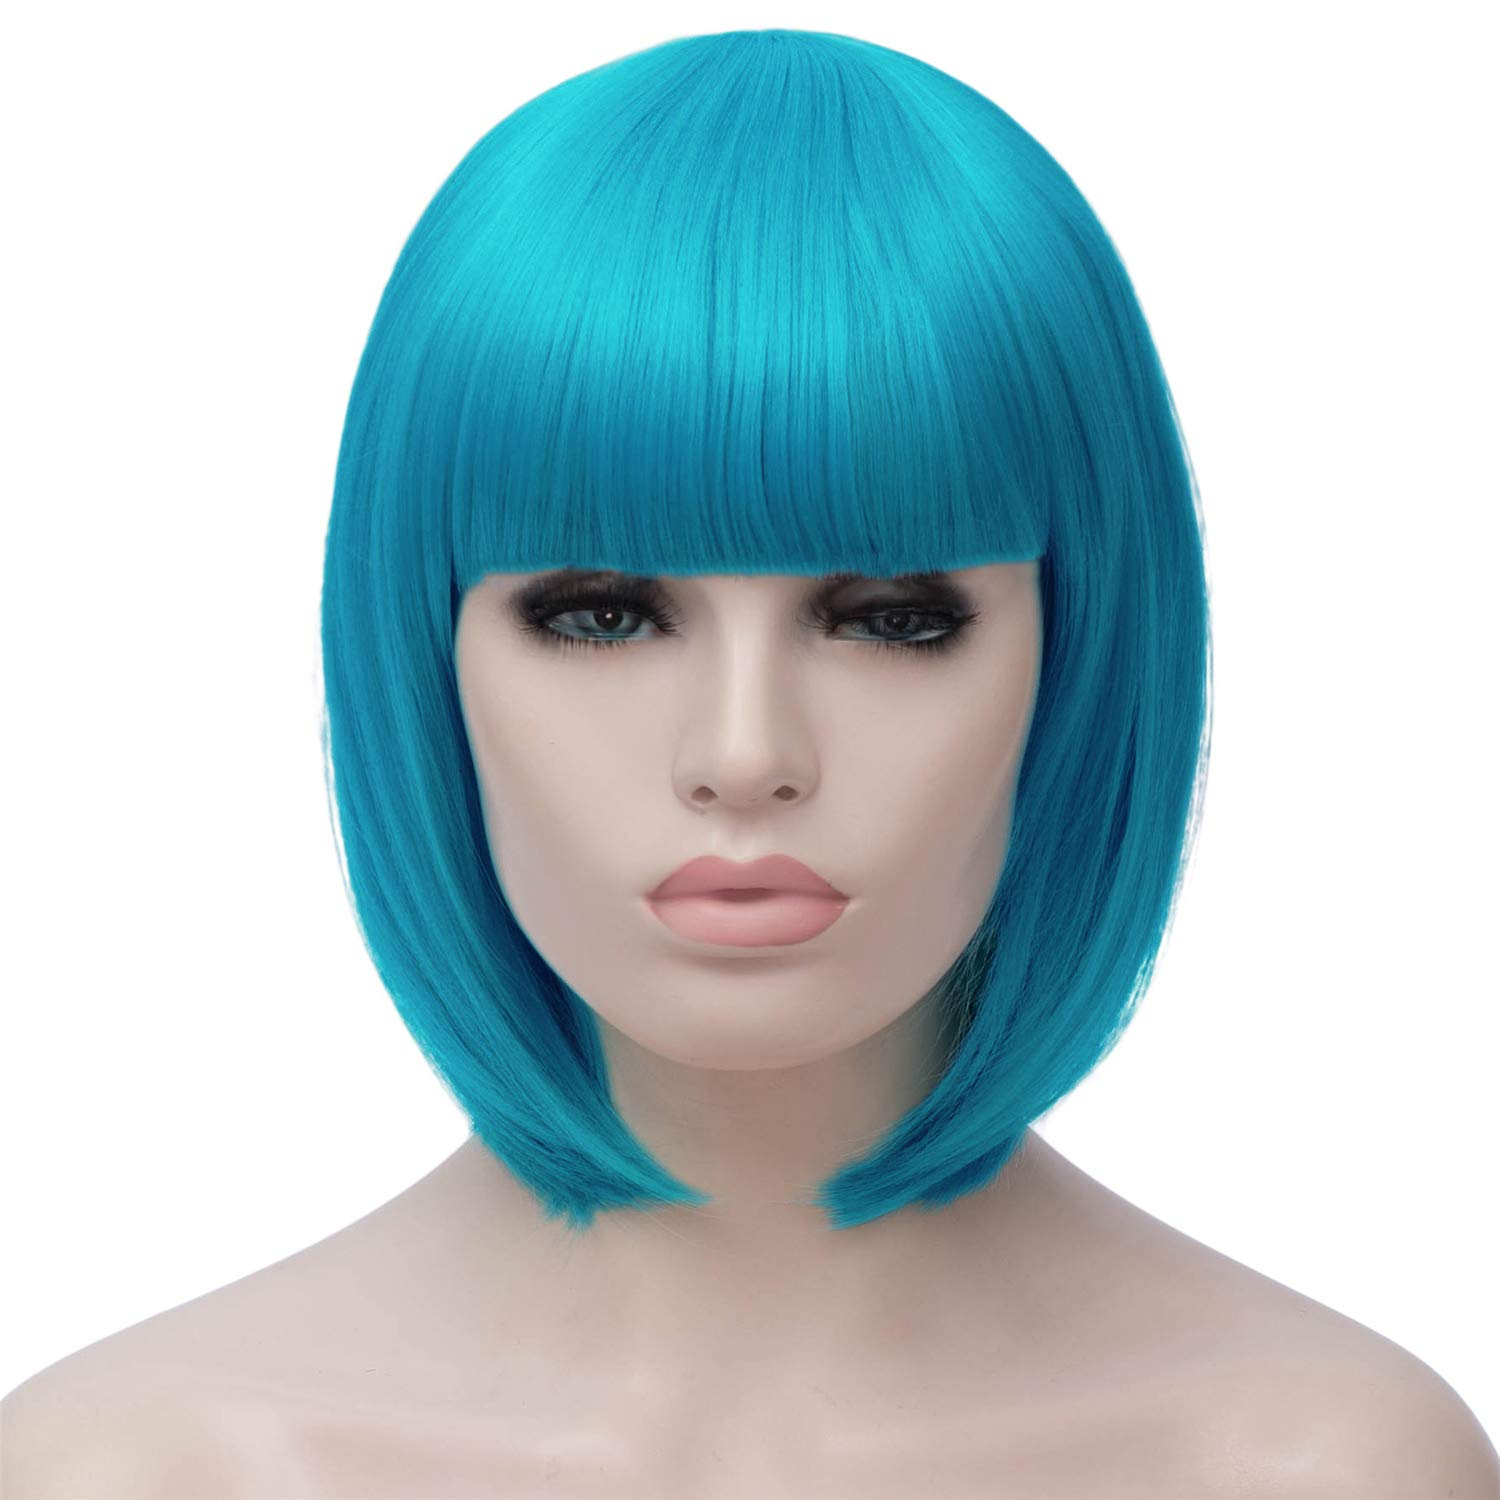 Amazon.com   Short Light Blue Bob Hair Wigs with Bangs for Women Straight  Synthetic Wig Natural As Real Hair 12   with Wig Cap BU27LB   Beauty 2b2129dc11